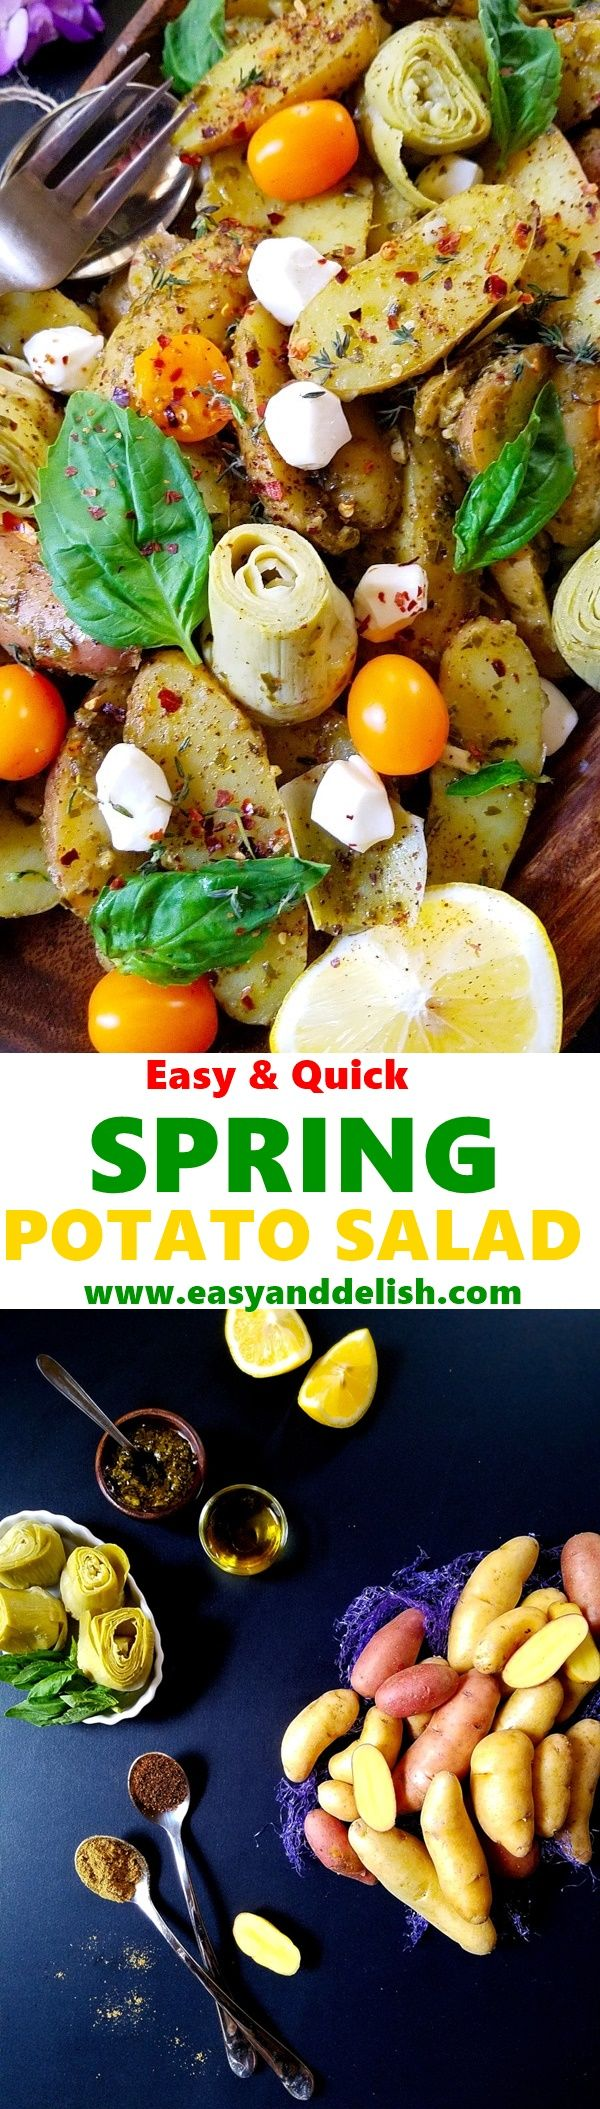 Love potato salad? We got you covered with this nutritious, easy and delish Spring Potato Salad that can be prepared in less than 30 minutes.  #beholdpotatoes #Icantbelieveitspotatoes